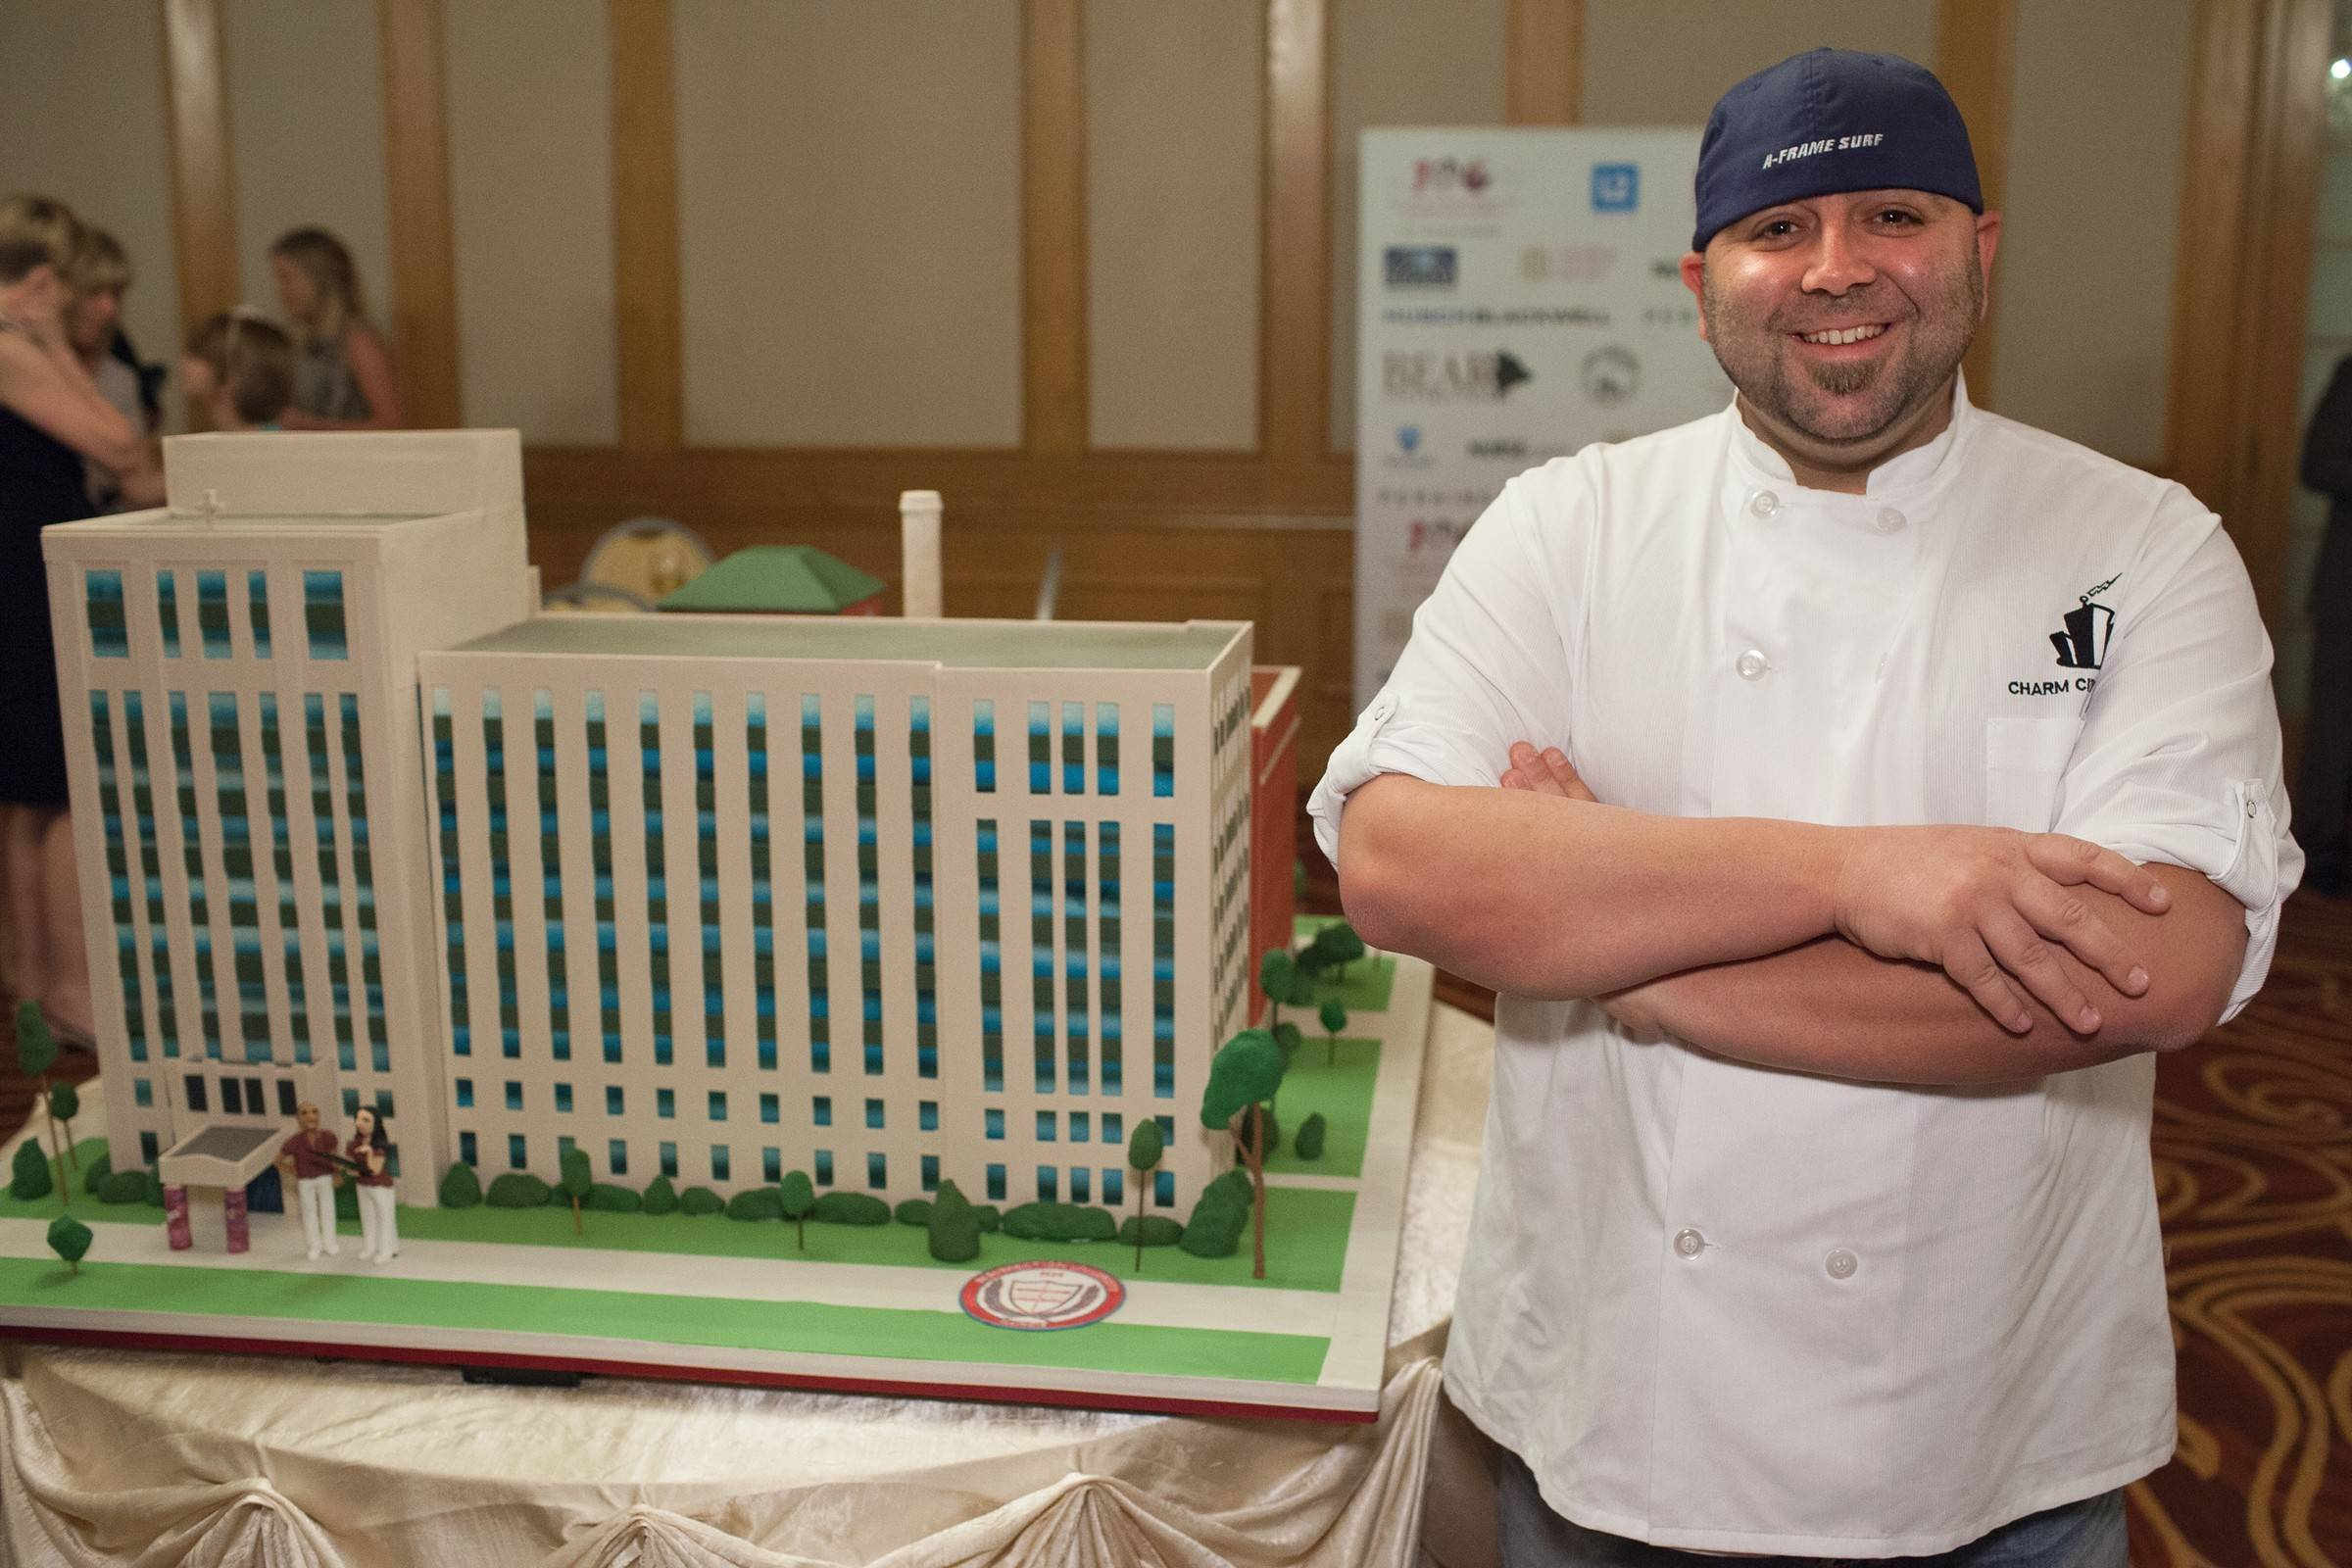 Resurrection University celebrated the 100th anniversary of its College of Nursing with edible replicas of the school's original Oak Park facility and its new school in Chicago's Wicker Park neighborhood created by chef Duff Goldman of Charm City Cakes in Baltimore, Md.